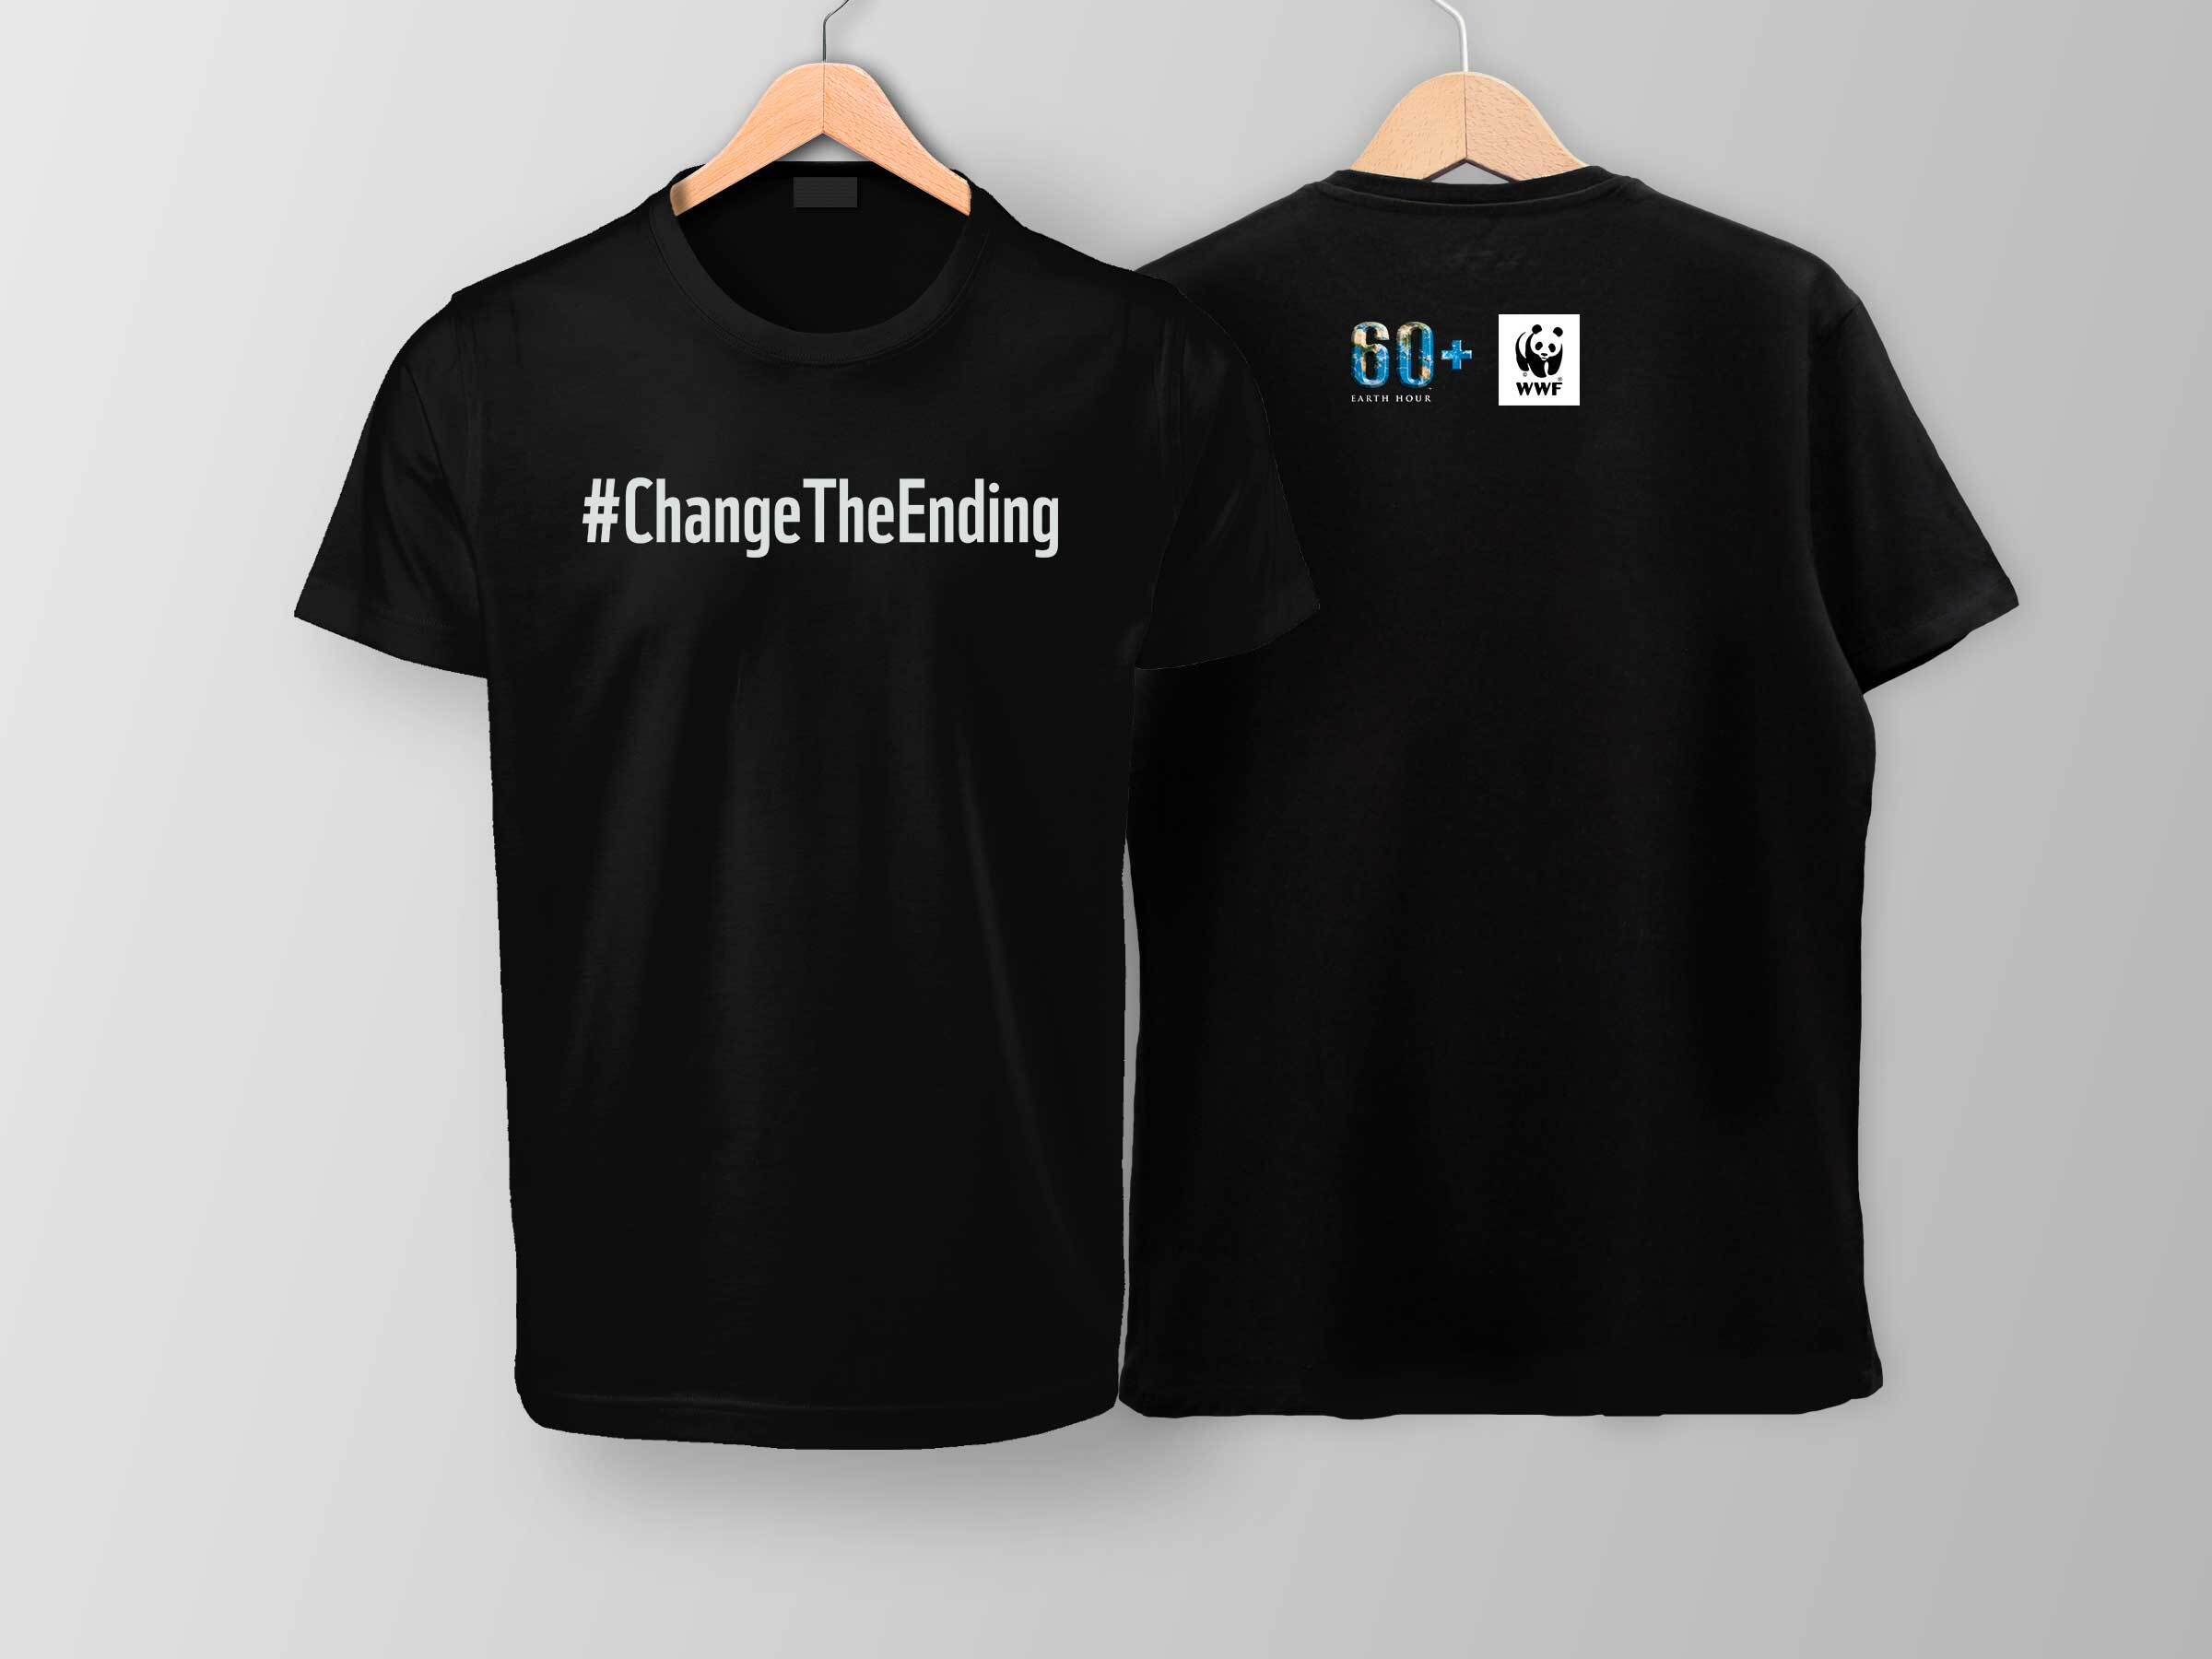 1eh2020 Shirt Hashtag Mockup On Black 1